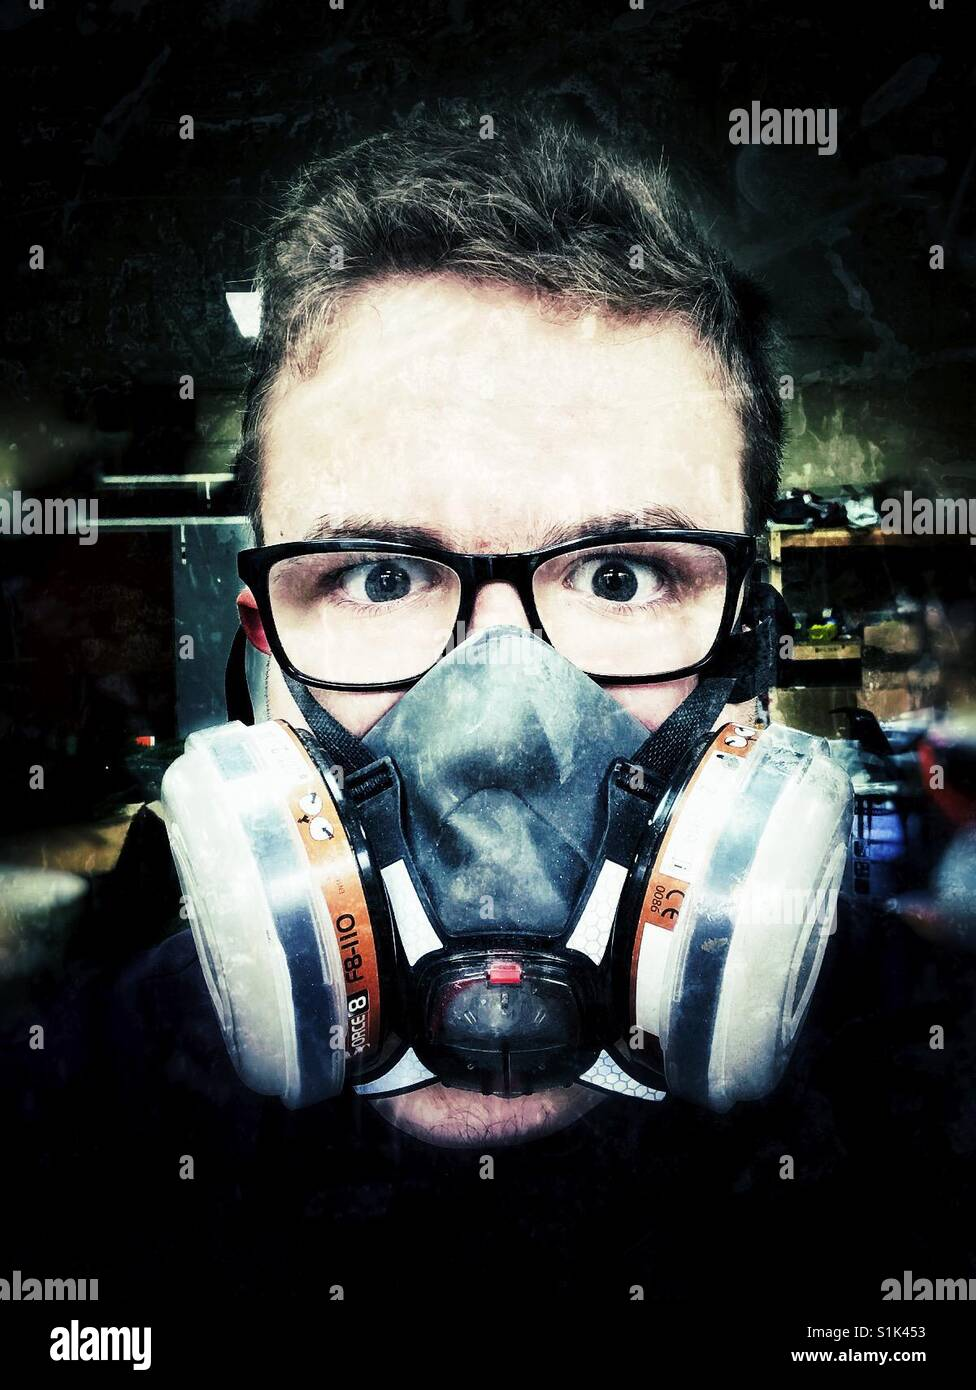 A young man wearing a breathing mask or respirator or gas mask - Stock Image